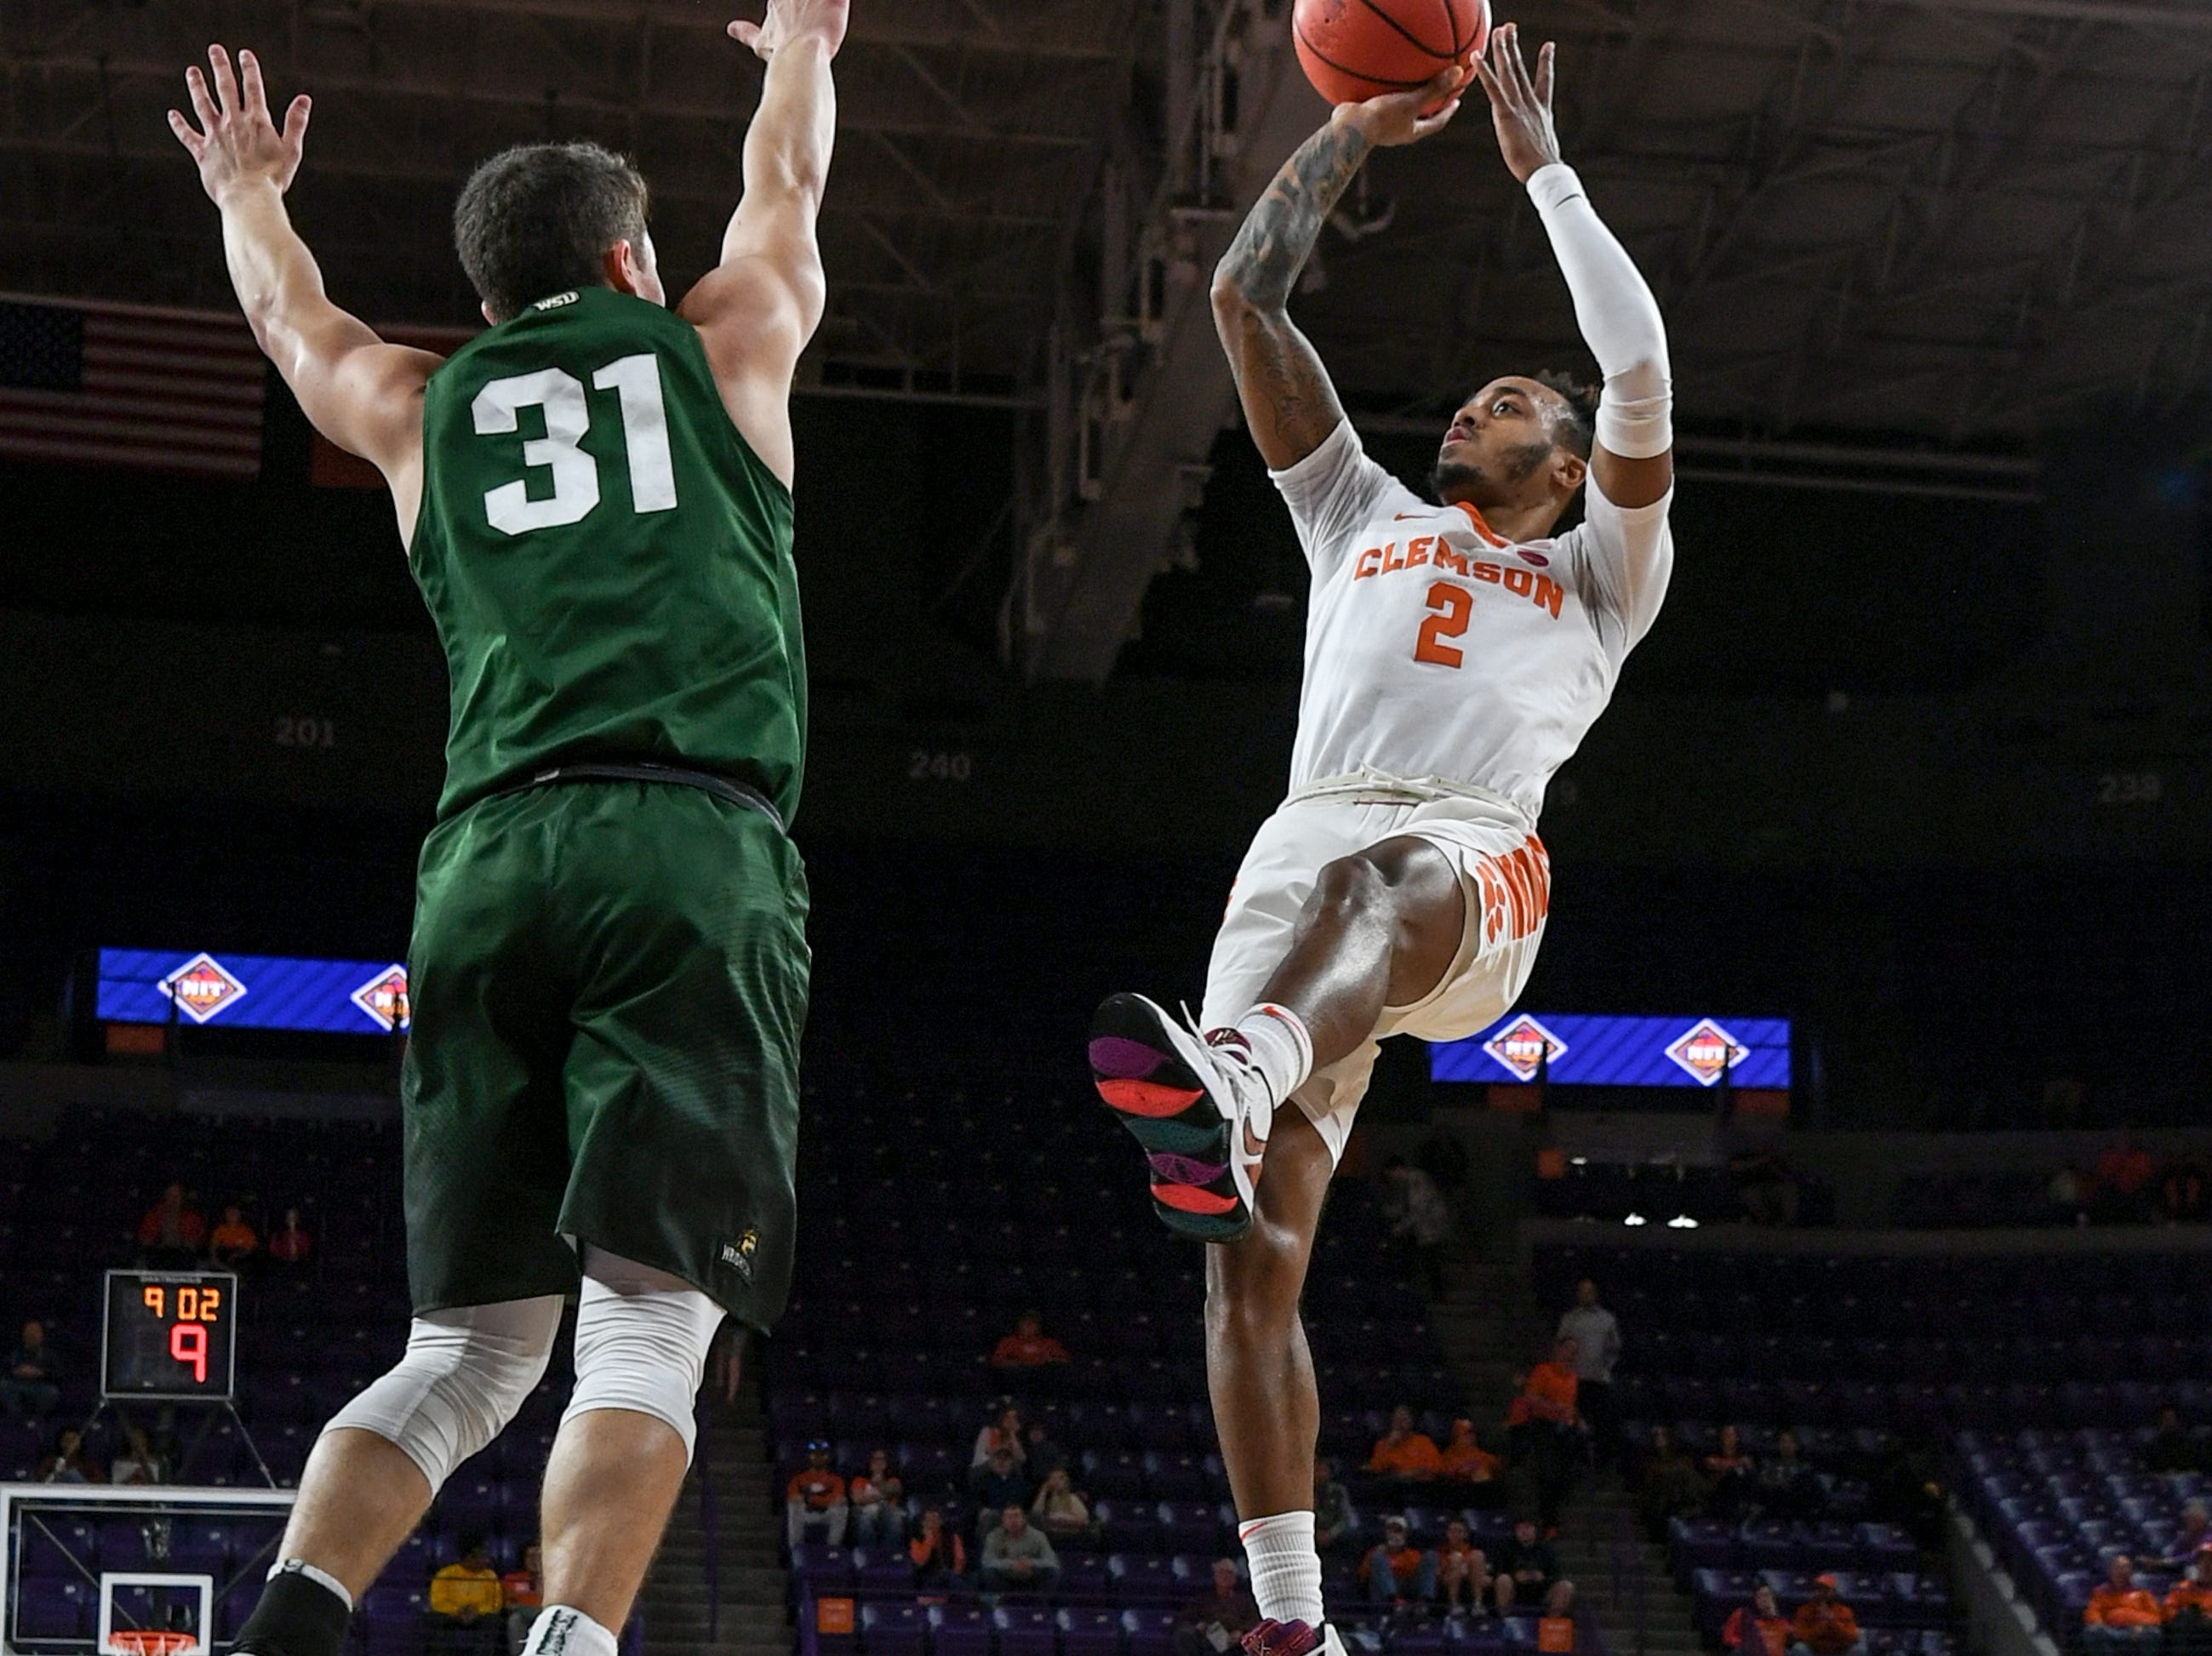 Clemson guard Marcquise Reed (2) shoots near Wright State guard Cole Gentry(31) during the first half of the NIT at Littlejohn Coliseum in Clemson Tuesday, March 19, 2019.